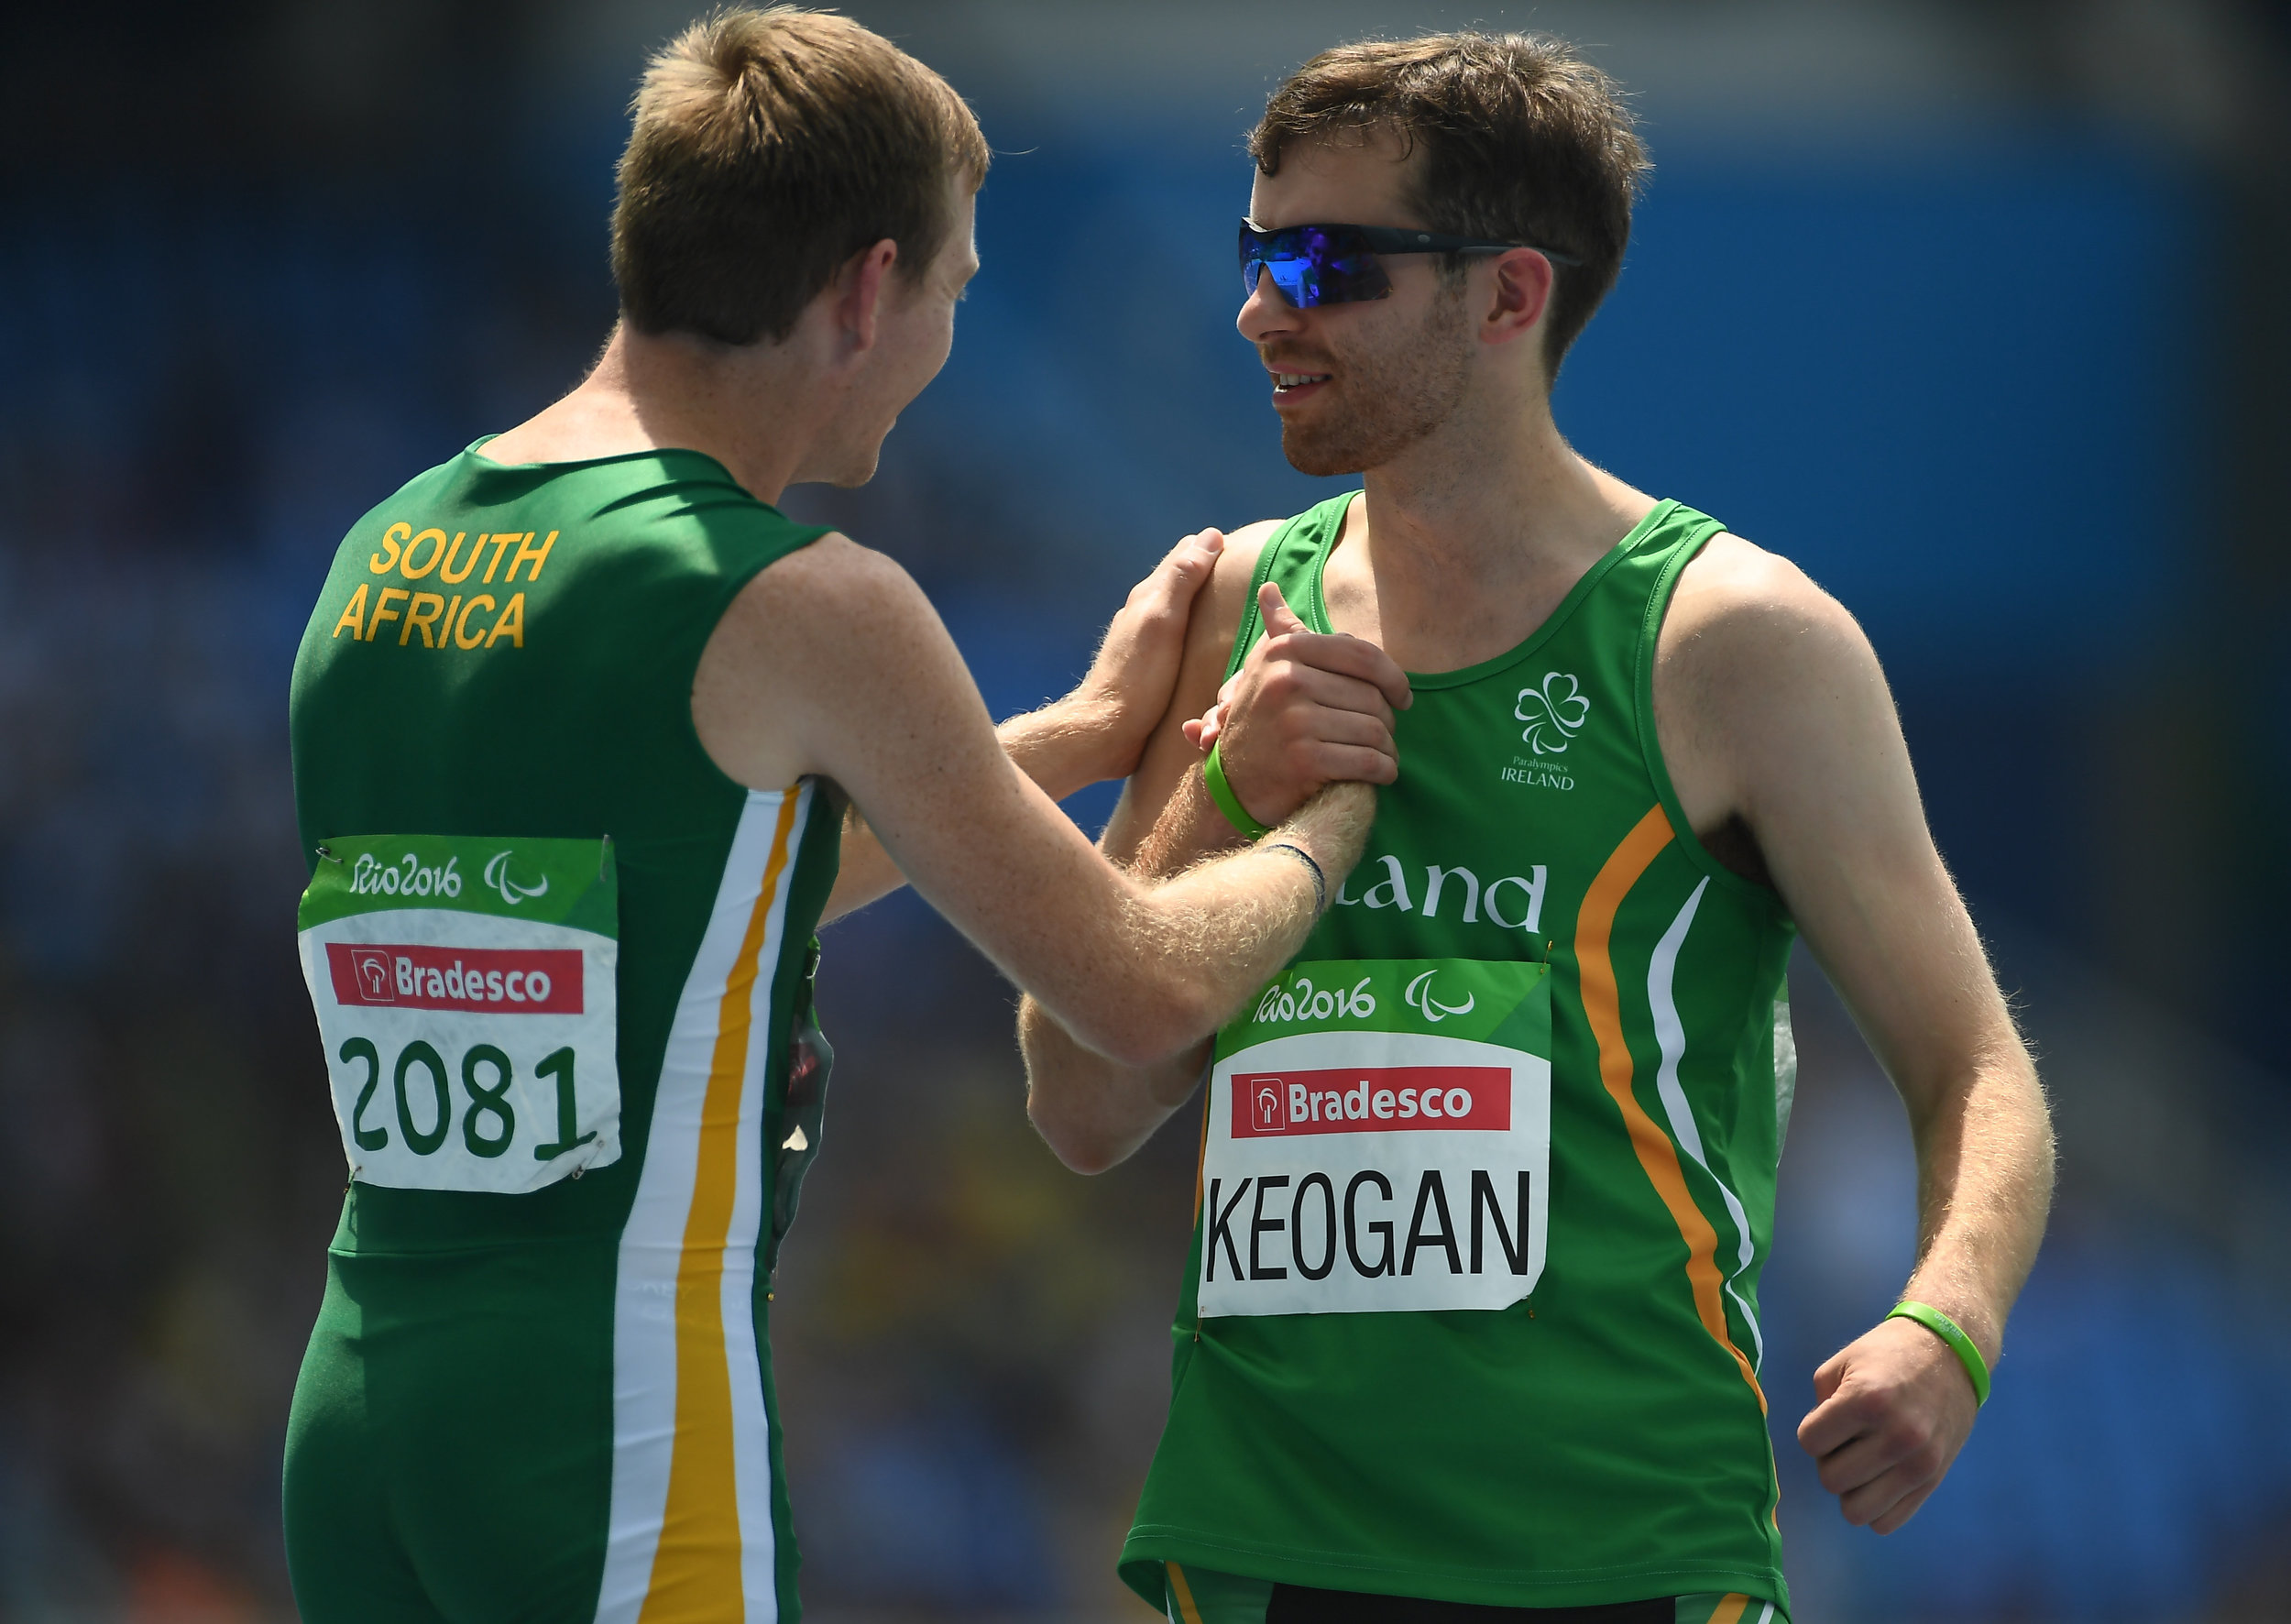 Athletics: Paul Keogan in the T37 400m Heats